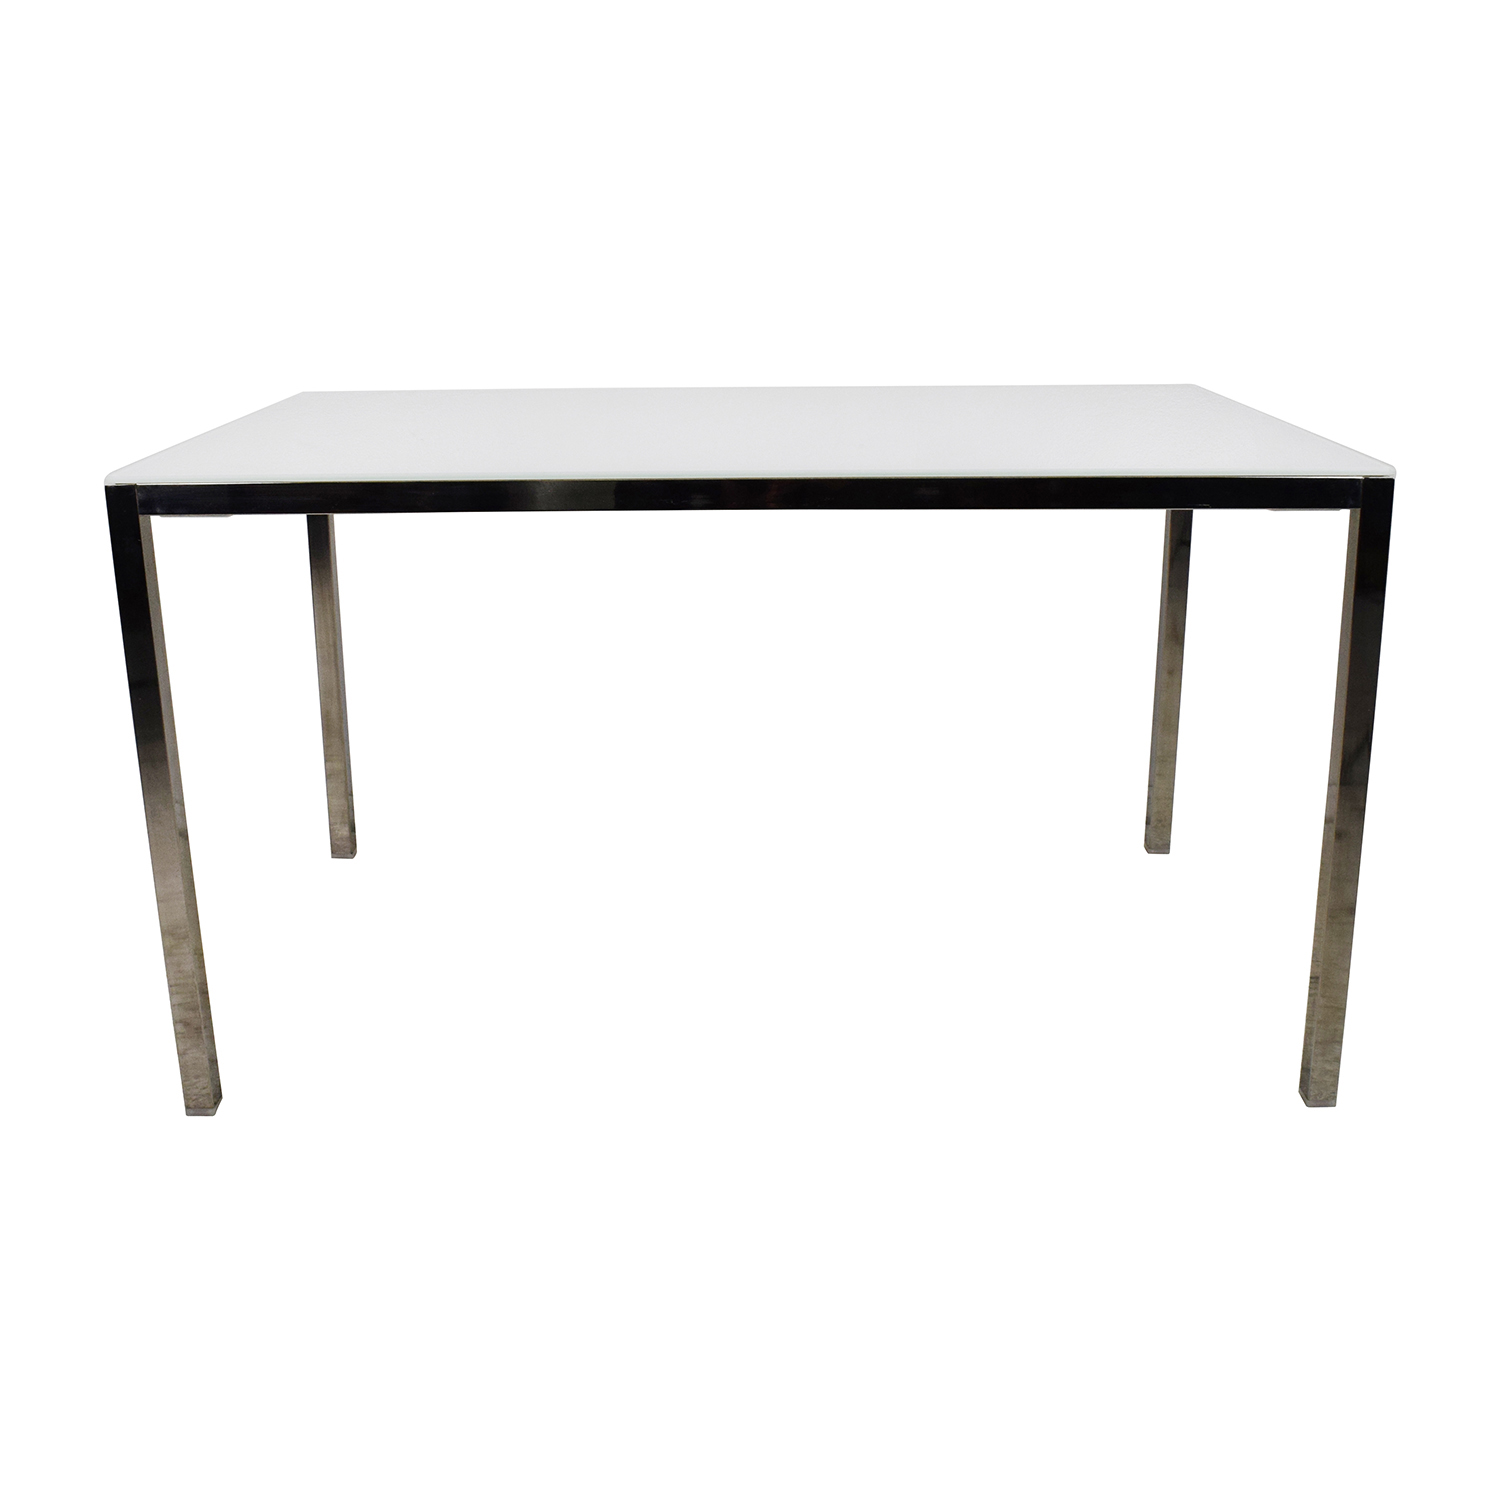 85 off ikea ikea torsby large glass top dining table tables - Glass dining table ikea ...